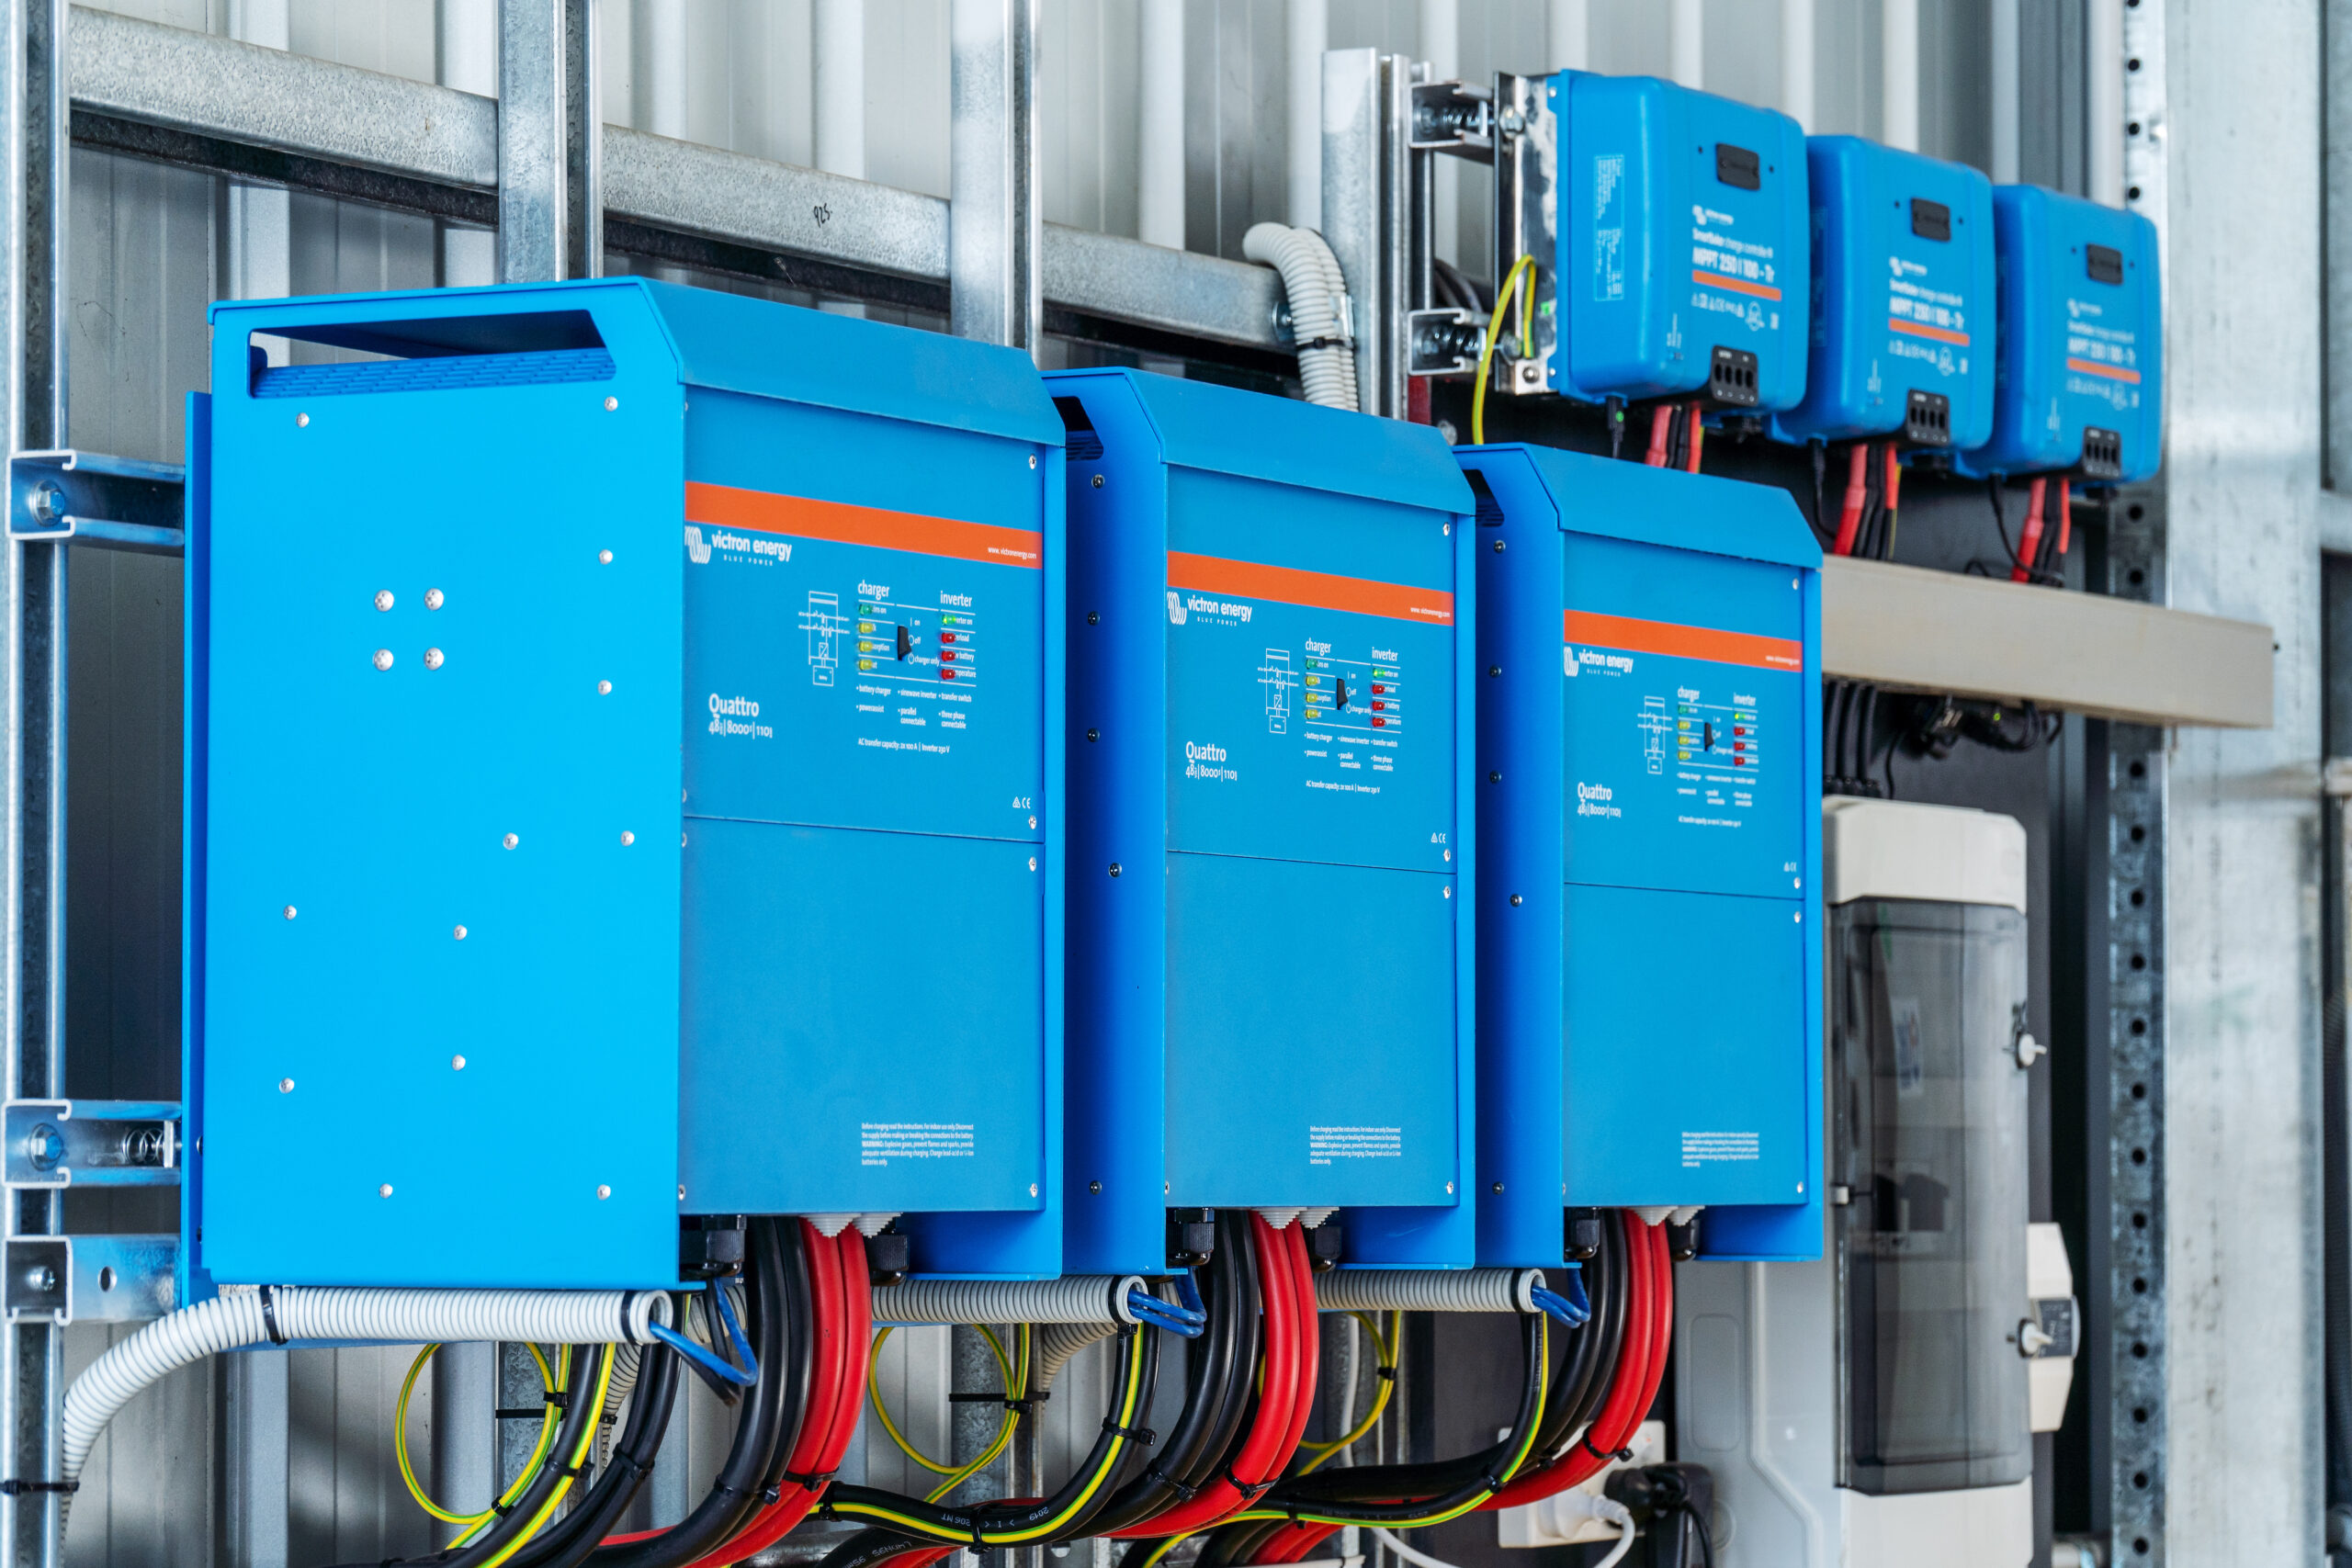 Victron energy quattro inverter/chargers at Kalyakool Farm